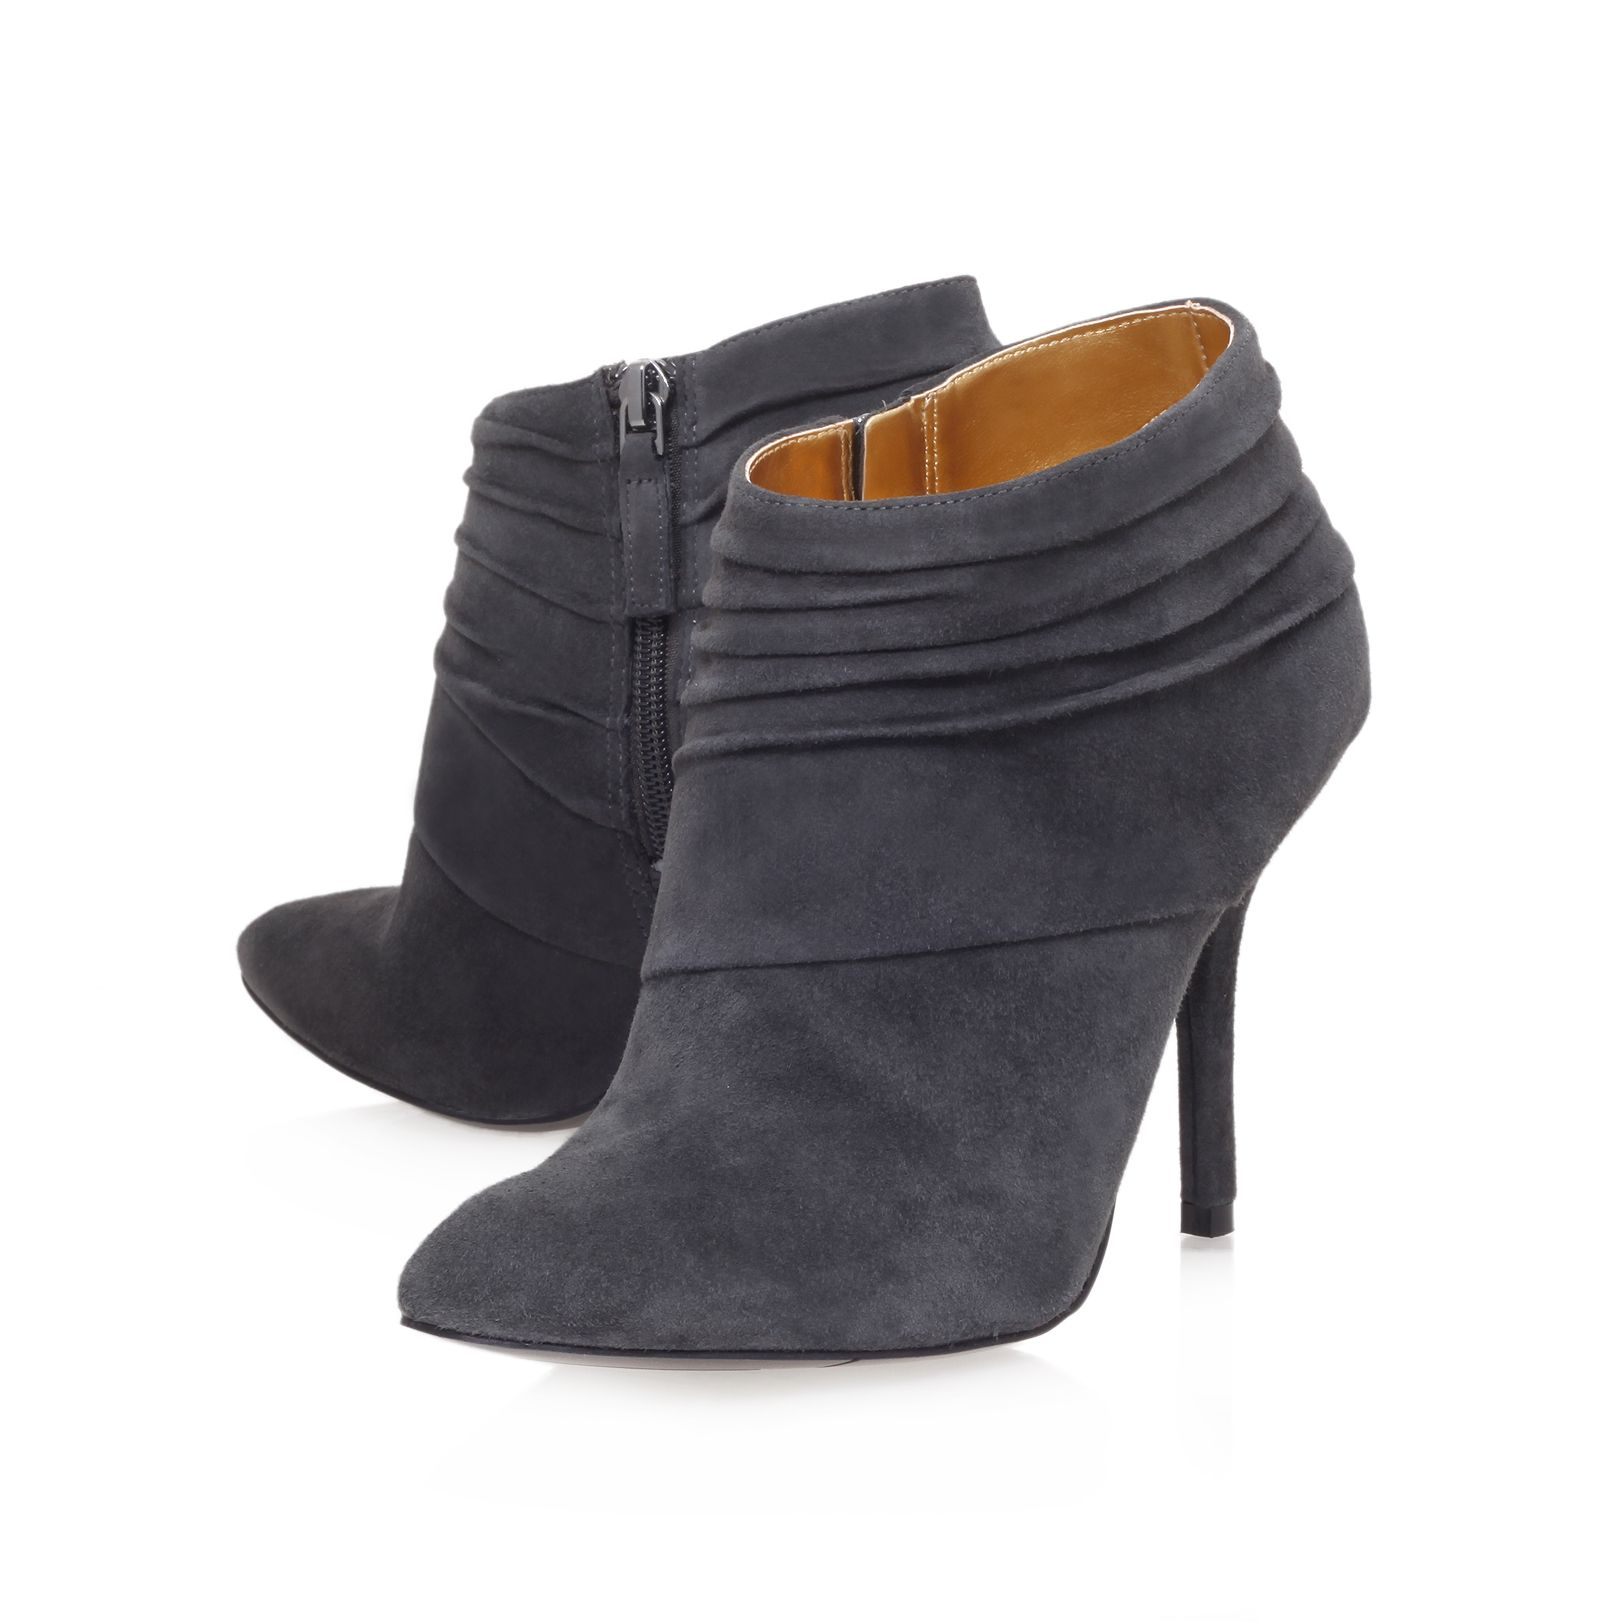 Junette mid heeled ankle boots